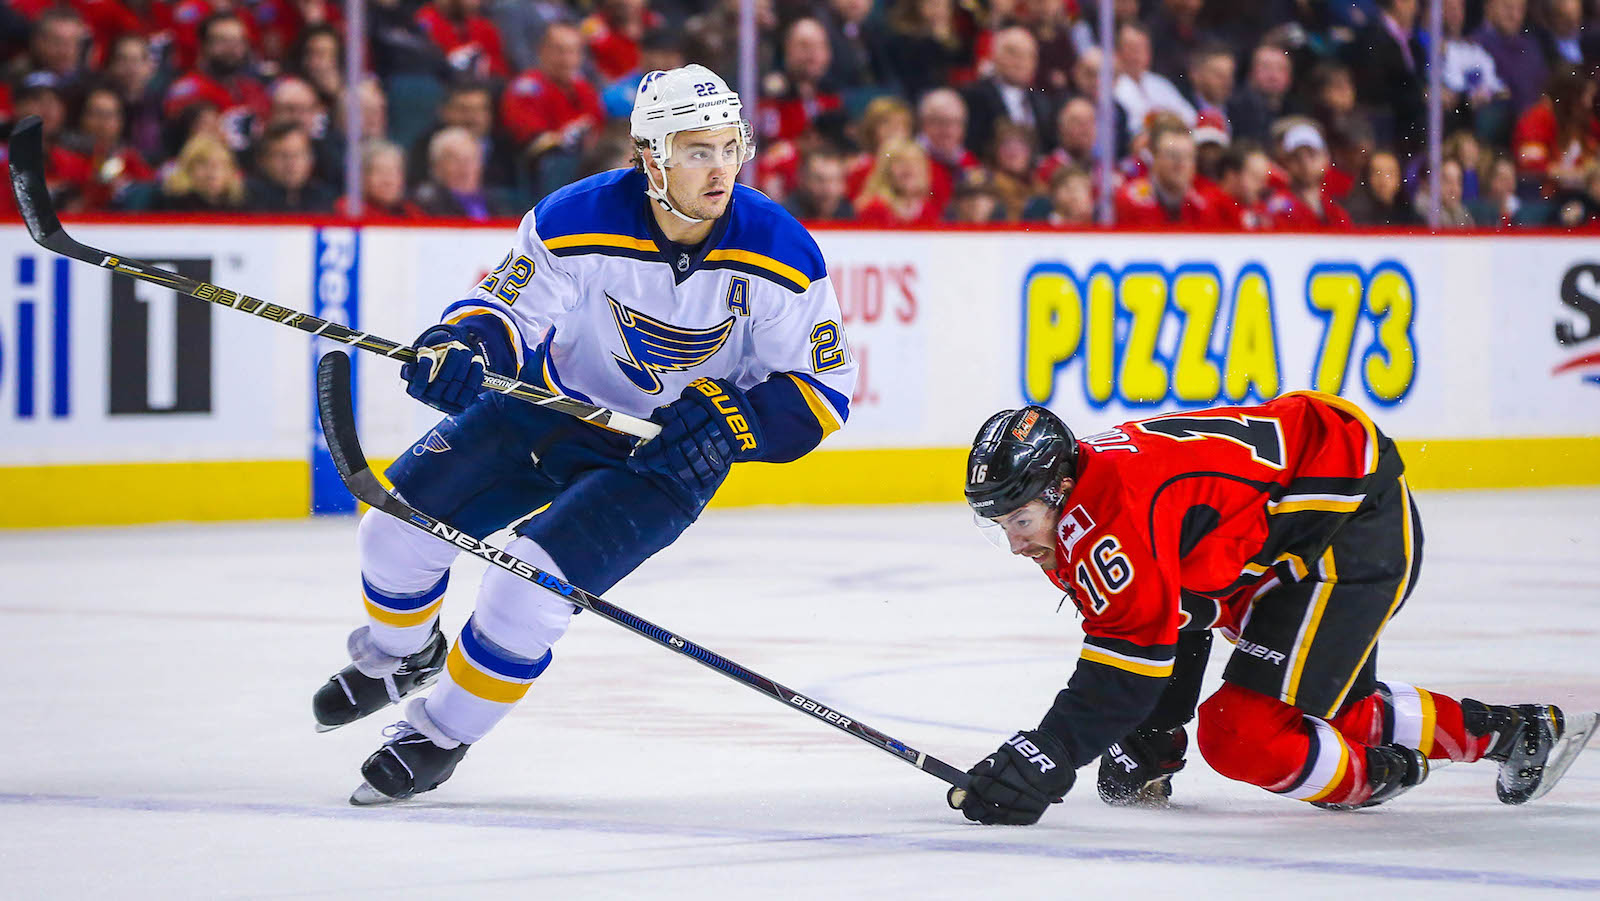 Mar 14, 2016; Calgary, Alberta, CAN; St. Louis Blues defenseman Kevin Shattenkirk (22) and Calgary Flames center Josh Jooris (16) during the first period at Scotiabank Saddledome. Calgary Flames won 7-4. Mandatory Credit: Sergei Belski-USA TODAY Sports